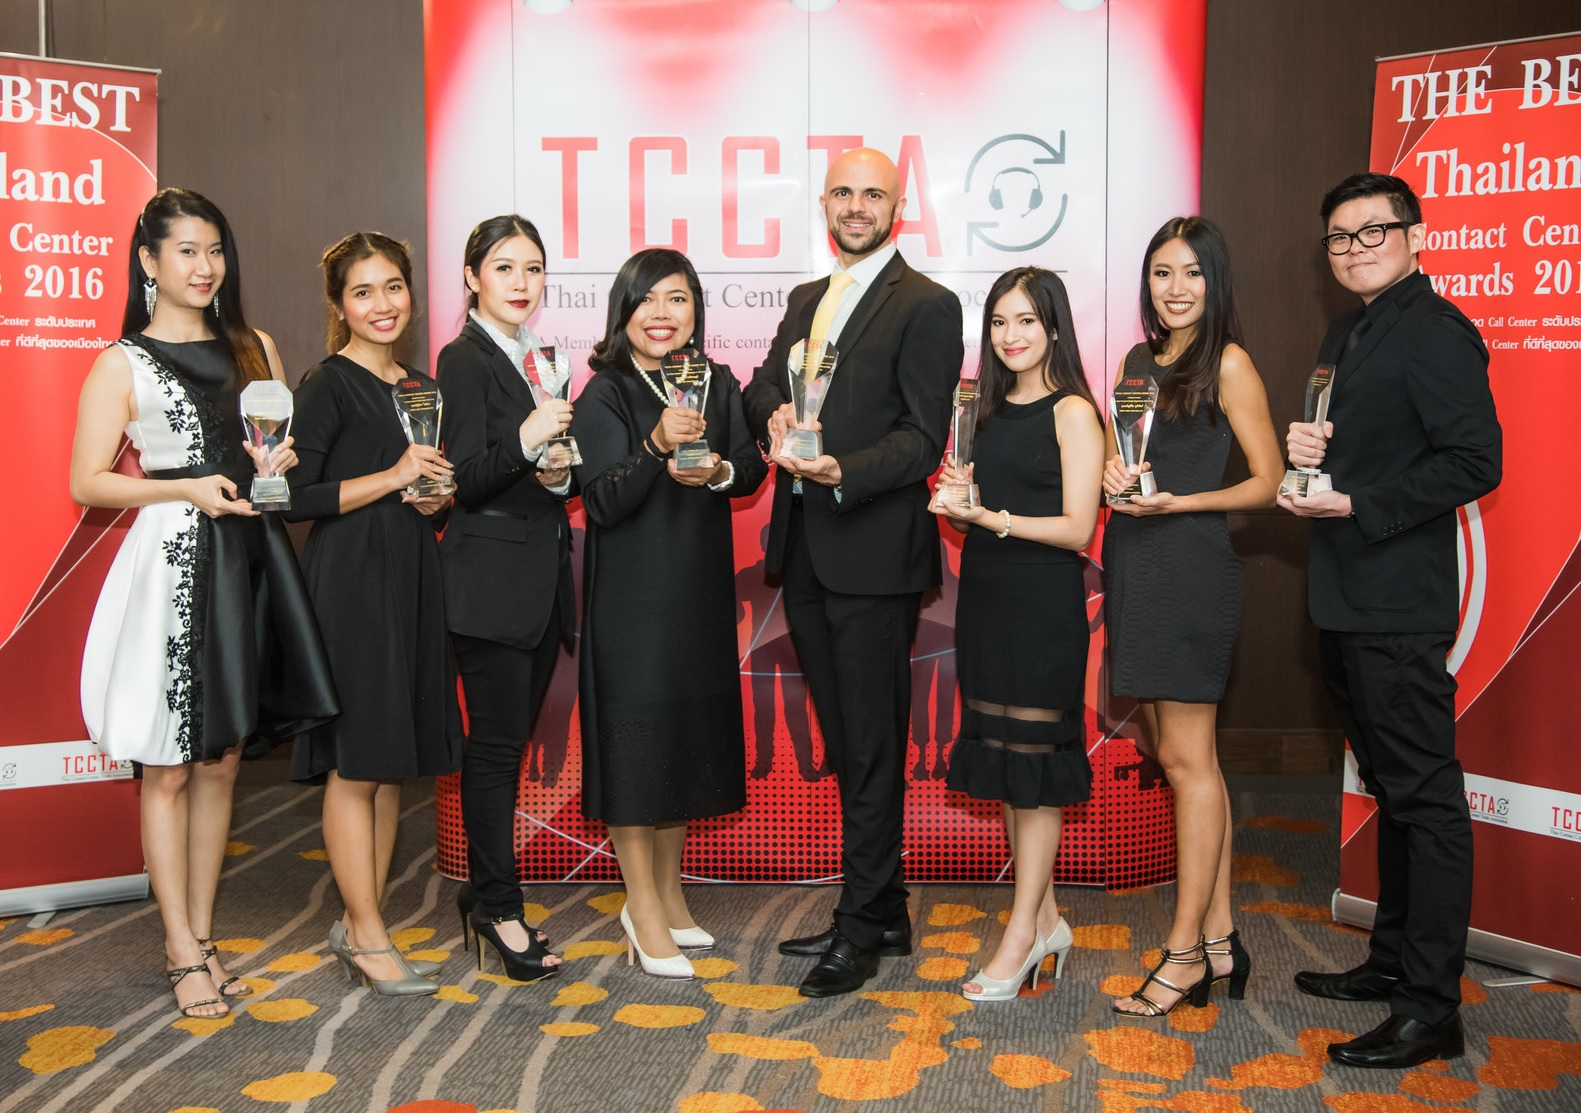 Direct Asia Thailand crowned for best in contact center service with the eight awards guaranteed at the TCCTA Contact Center Award 2016